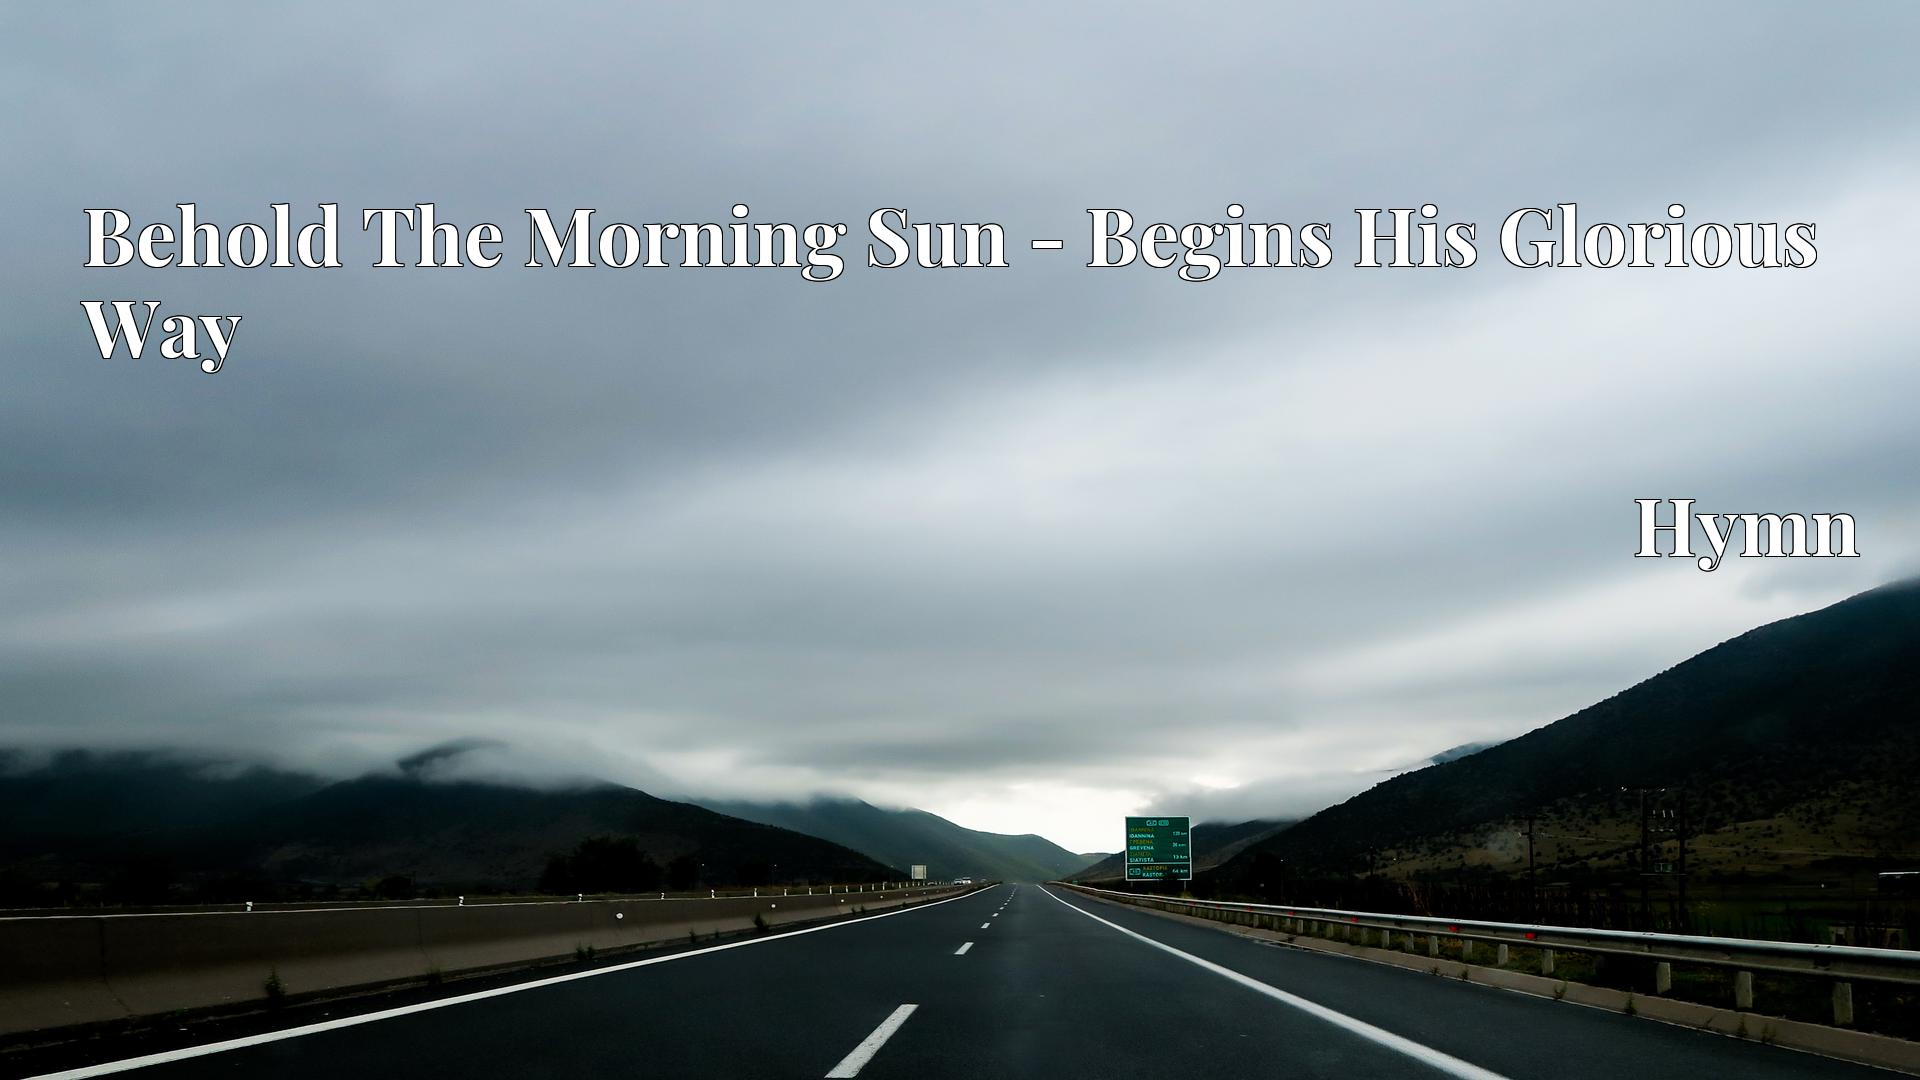 Behold The Morning Sun - Begins His Glorious Way Hymn